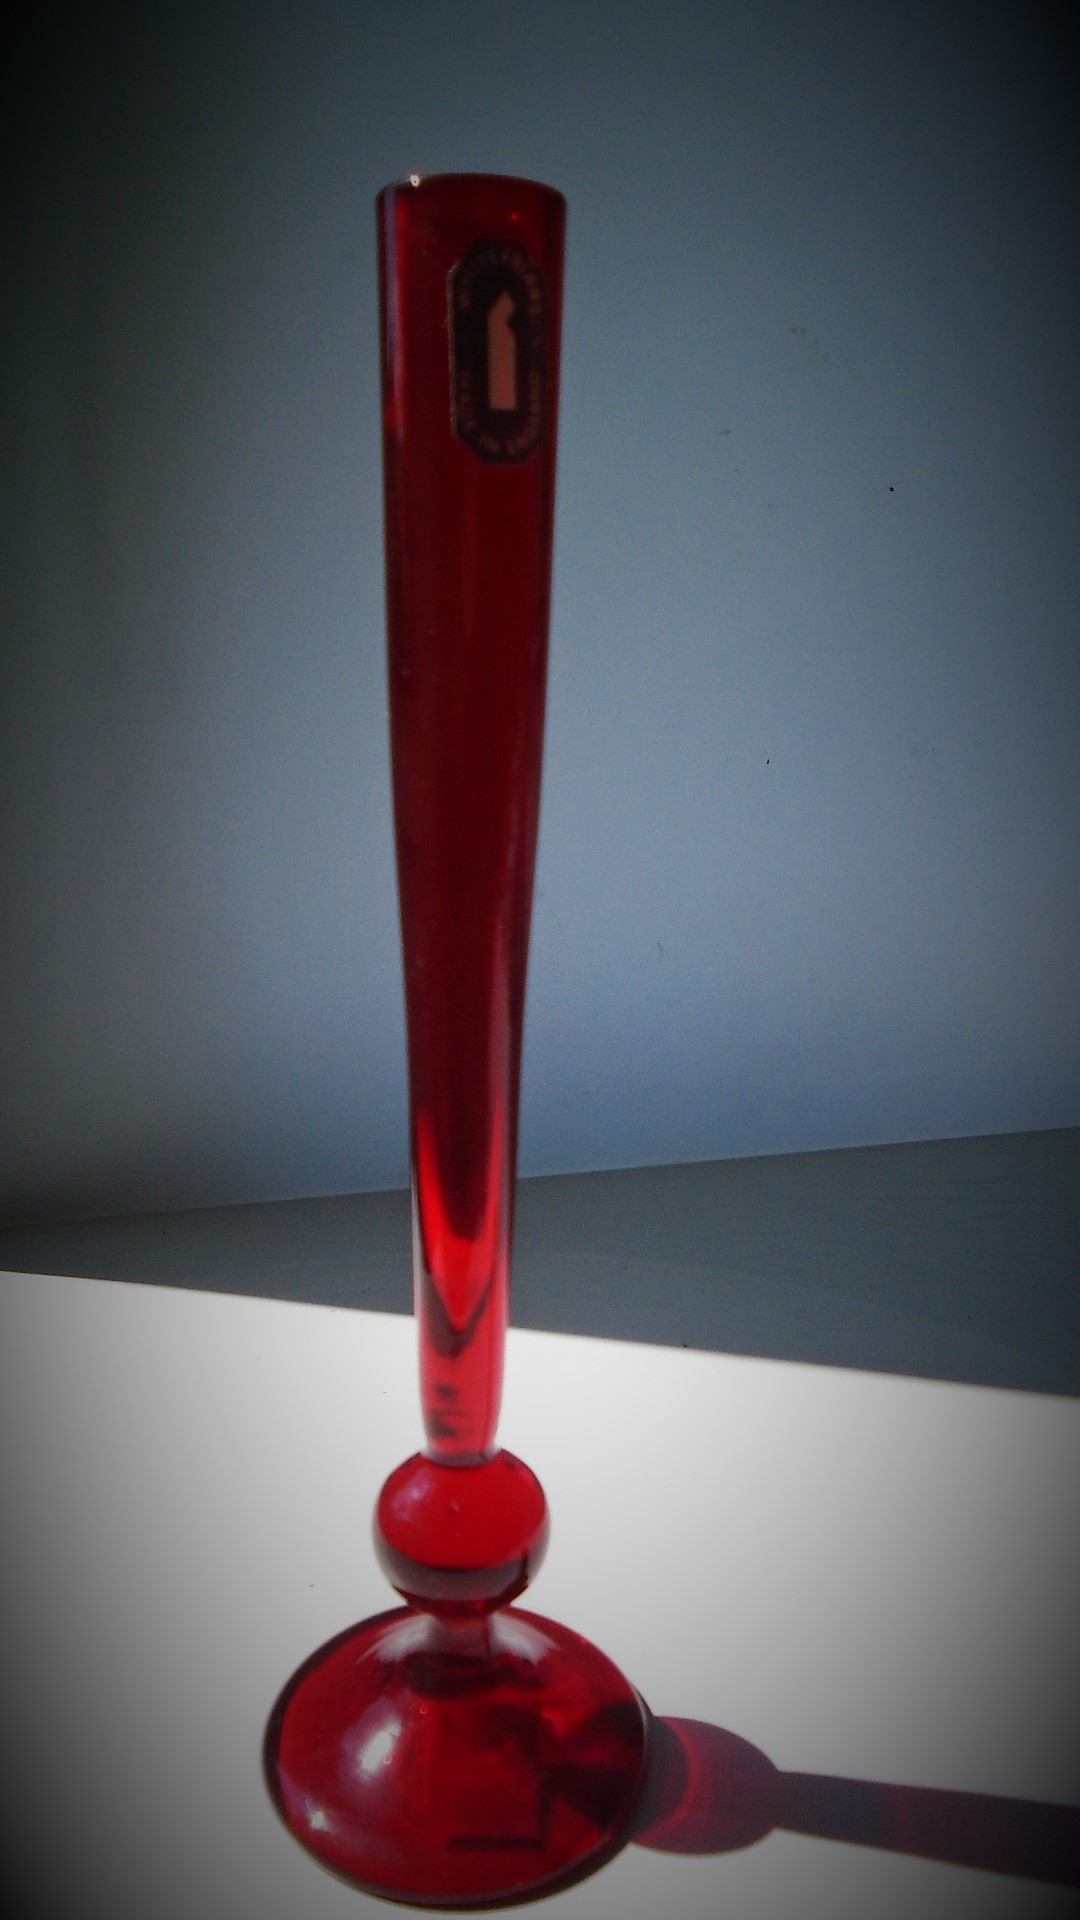 Whitefriars ruby red 19cms high glass stem vase, designed by Geoffrey Baxter in the 1950's, pattern number 9484